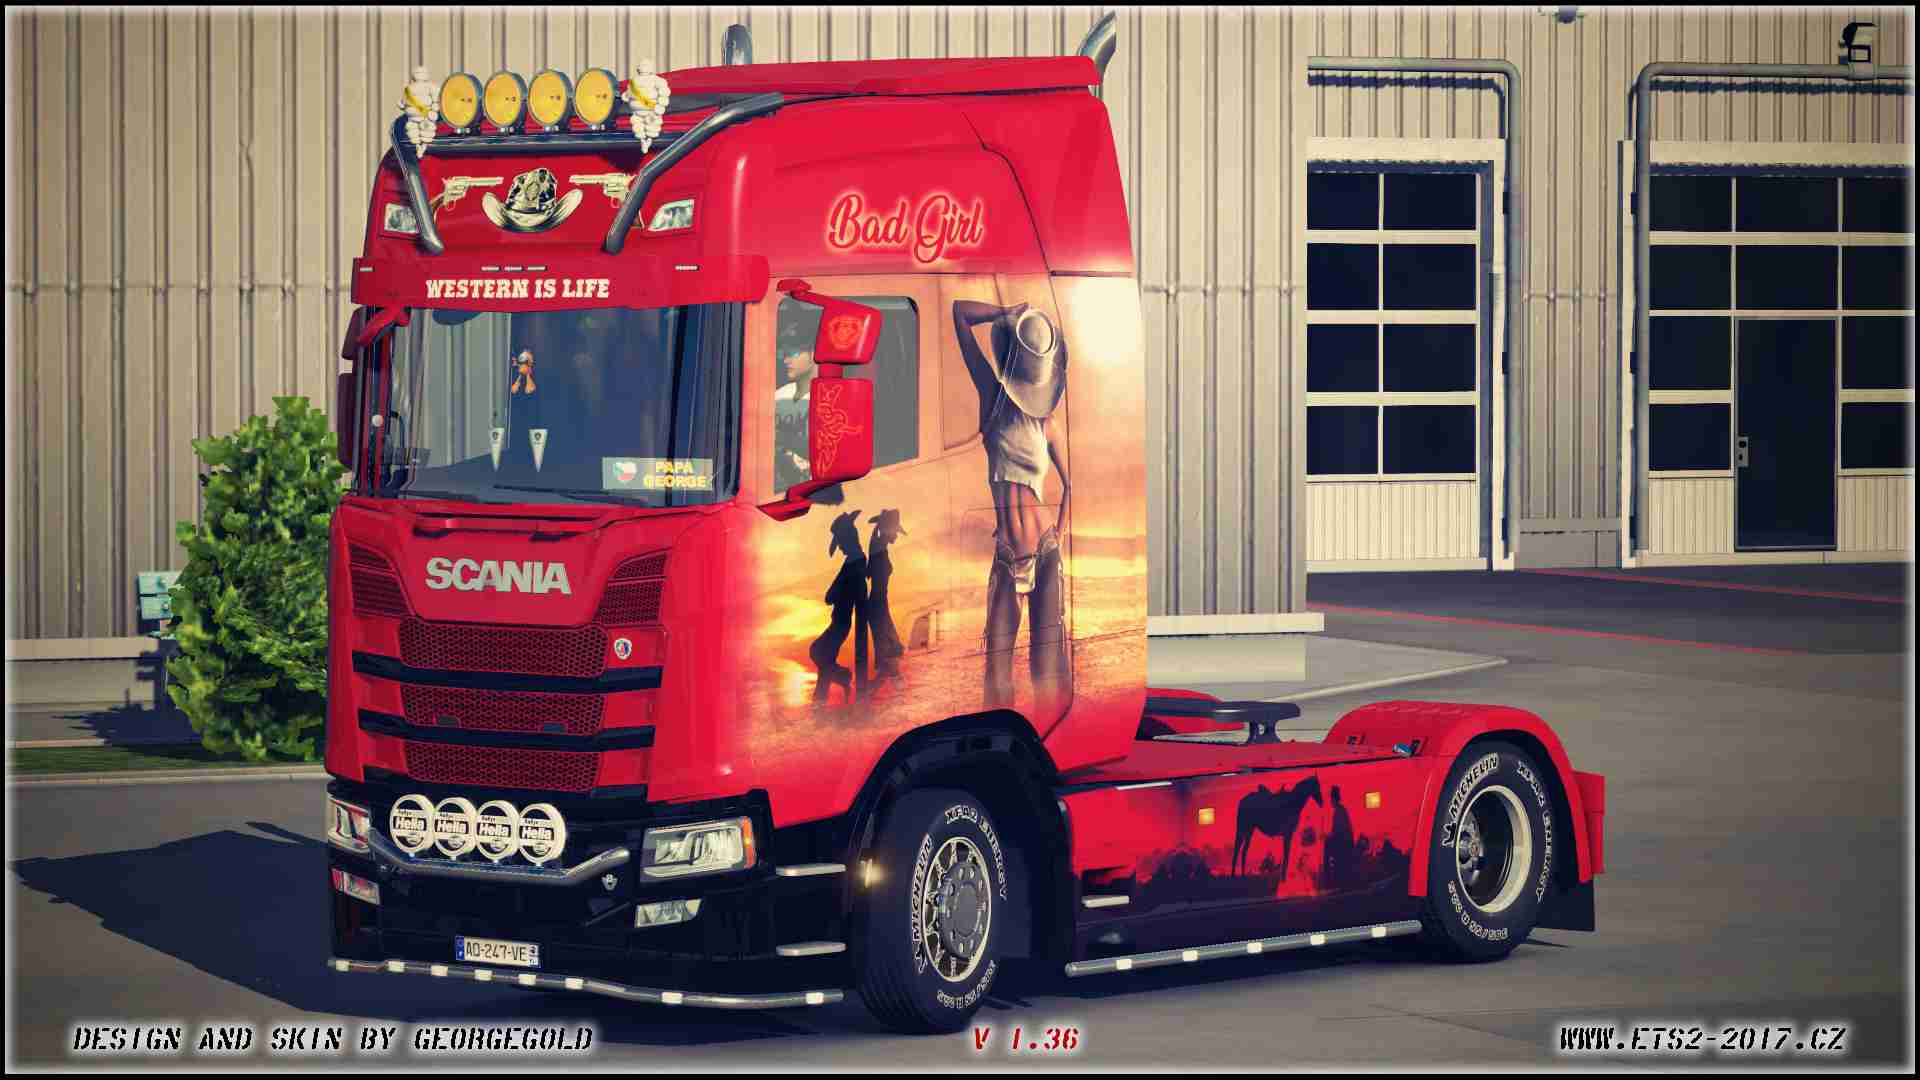 Scania S NG Western is Life